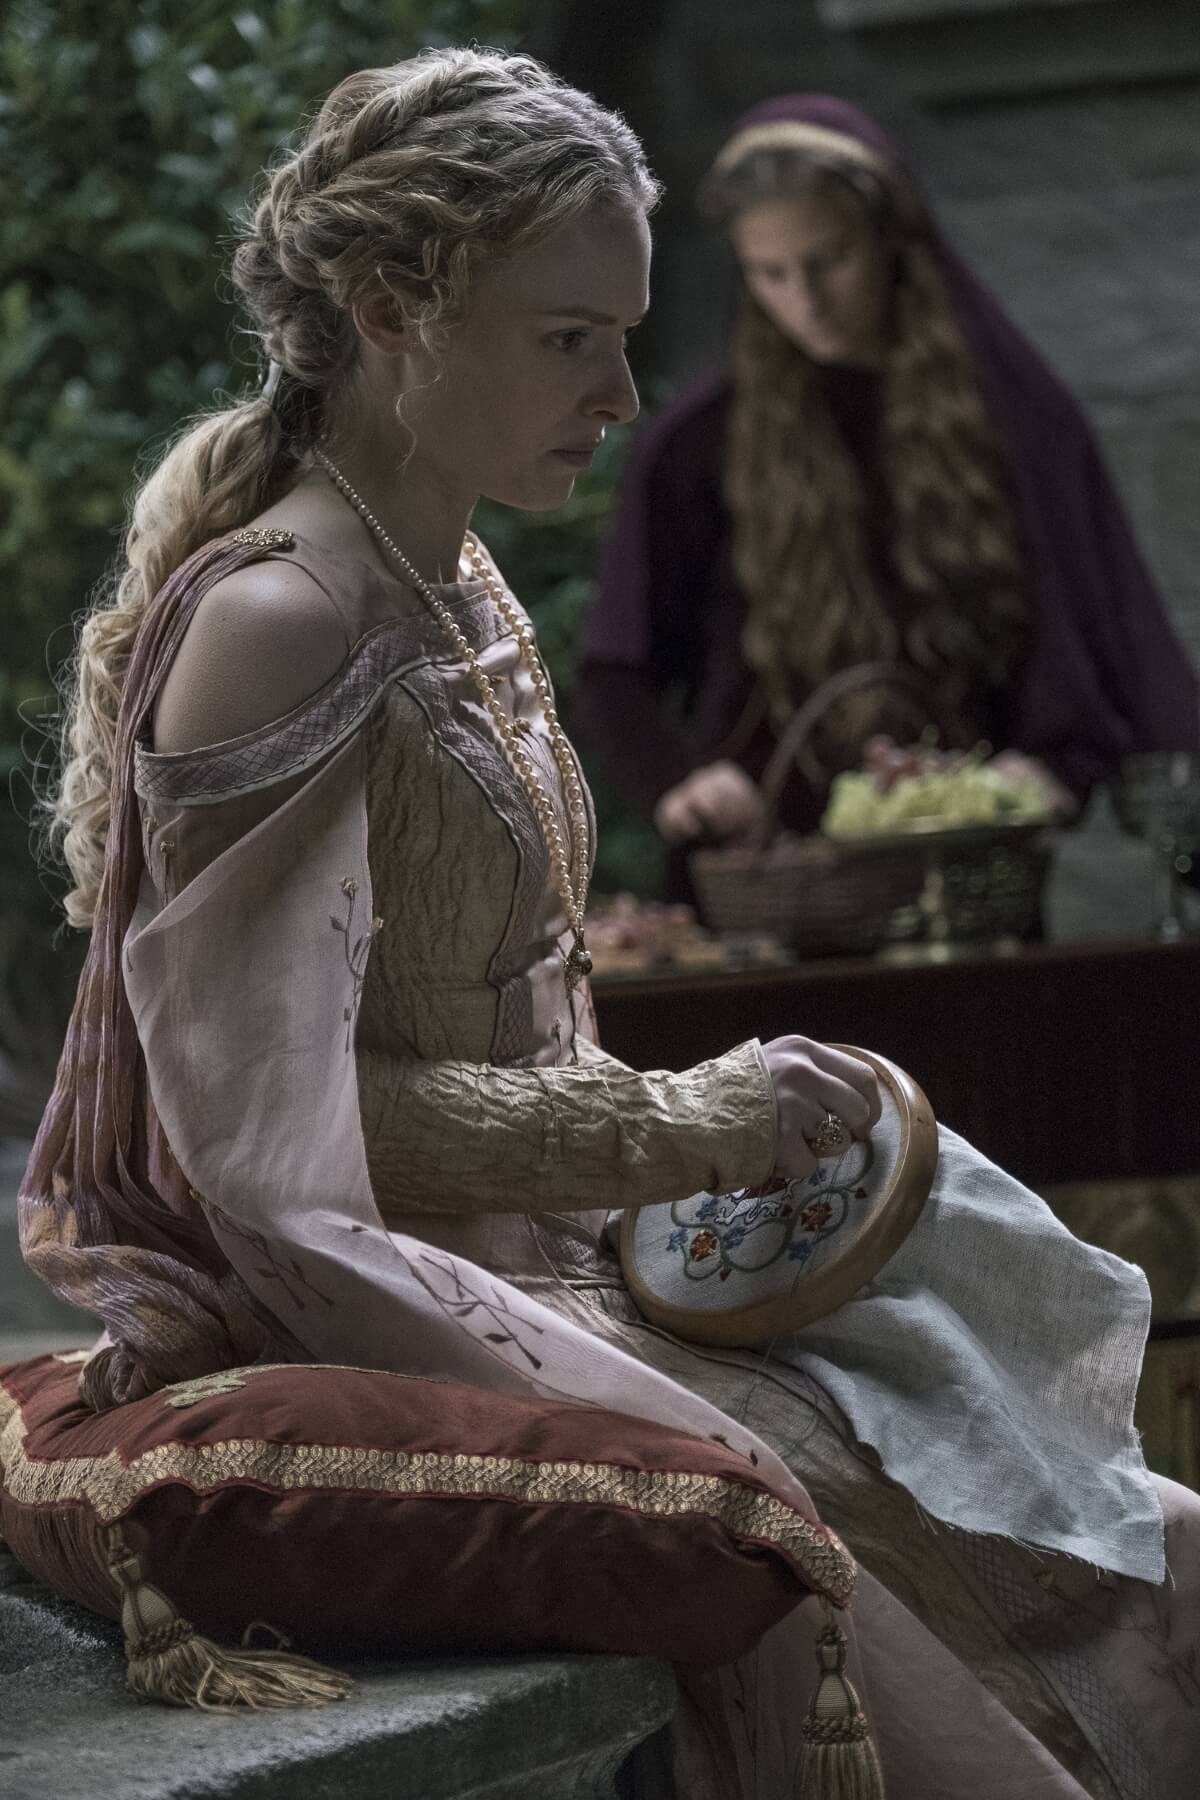 History Channel's 'Knightfall,' Season 2, Episode 6, Blood Drenched Stone, Clementine Nicholson stars as Princess Margaret